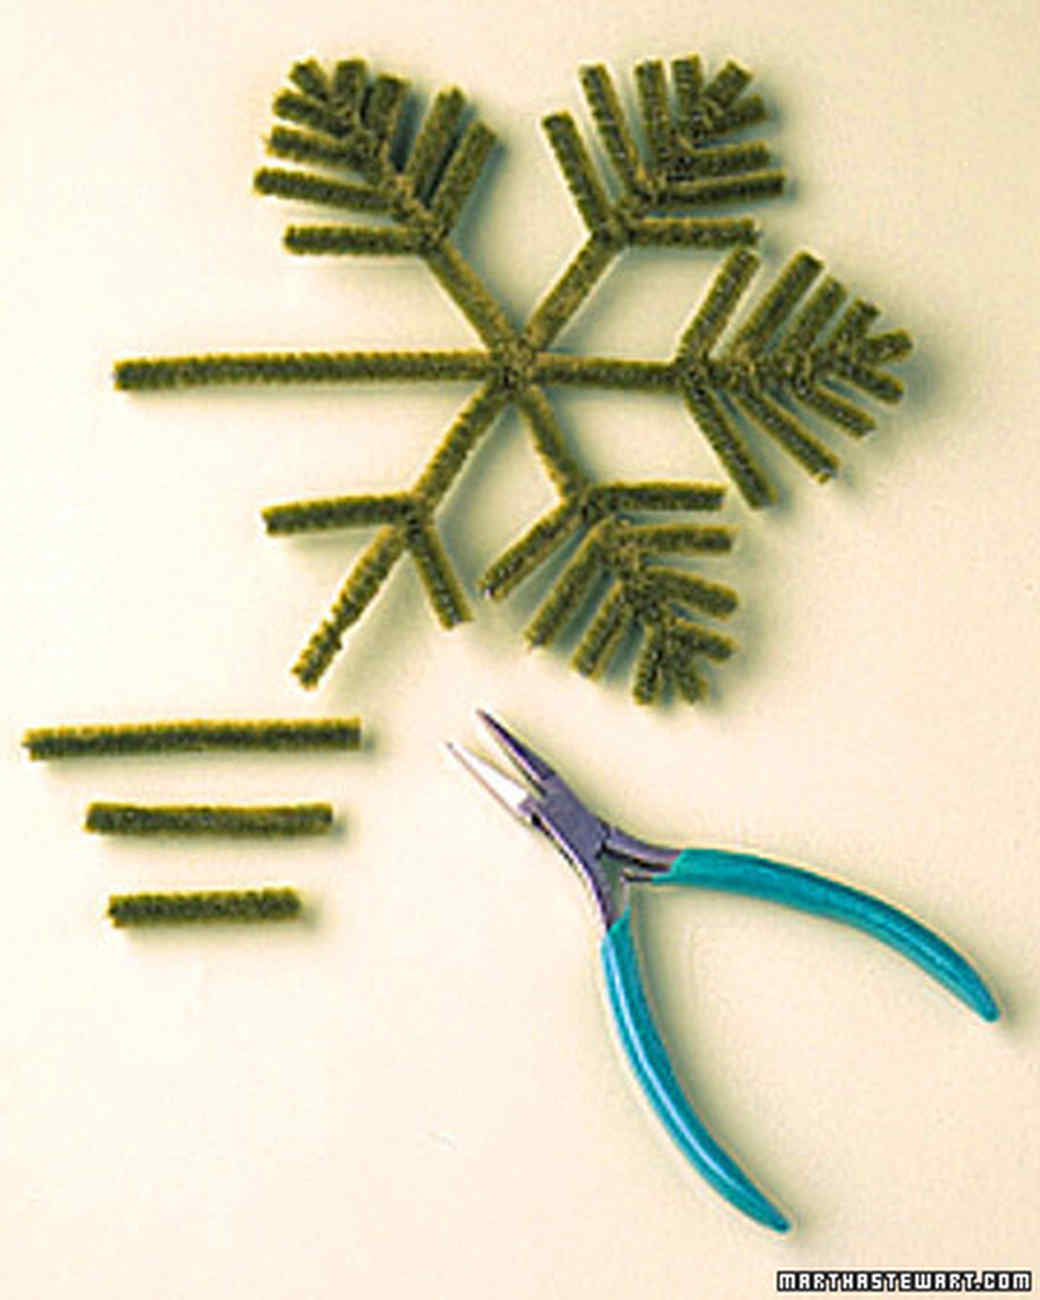 Pipe Cleaner Decorations: Christmas Tree